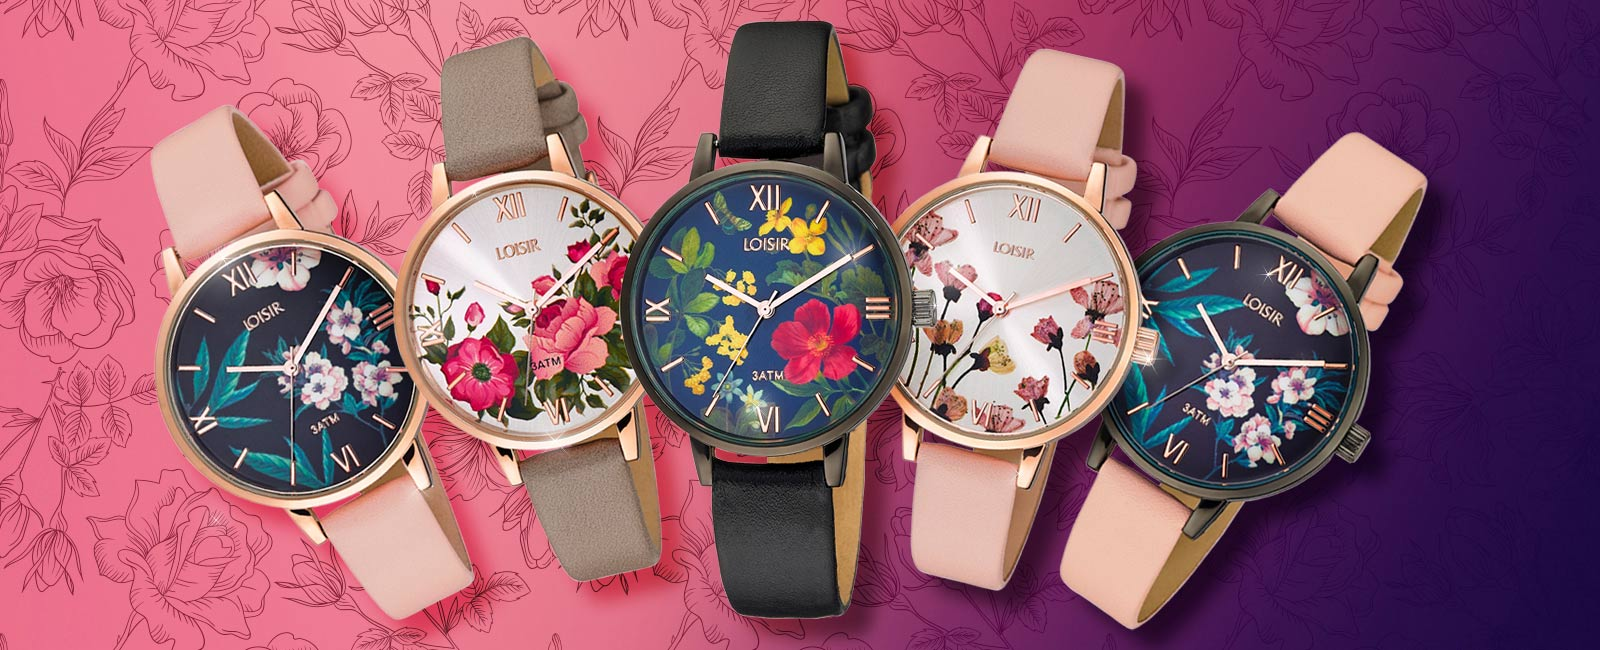 New Flower Bomb Watch - Loisir